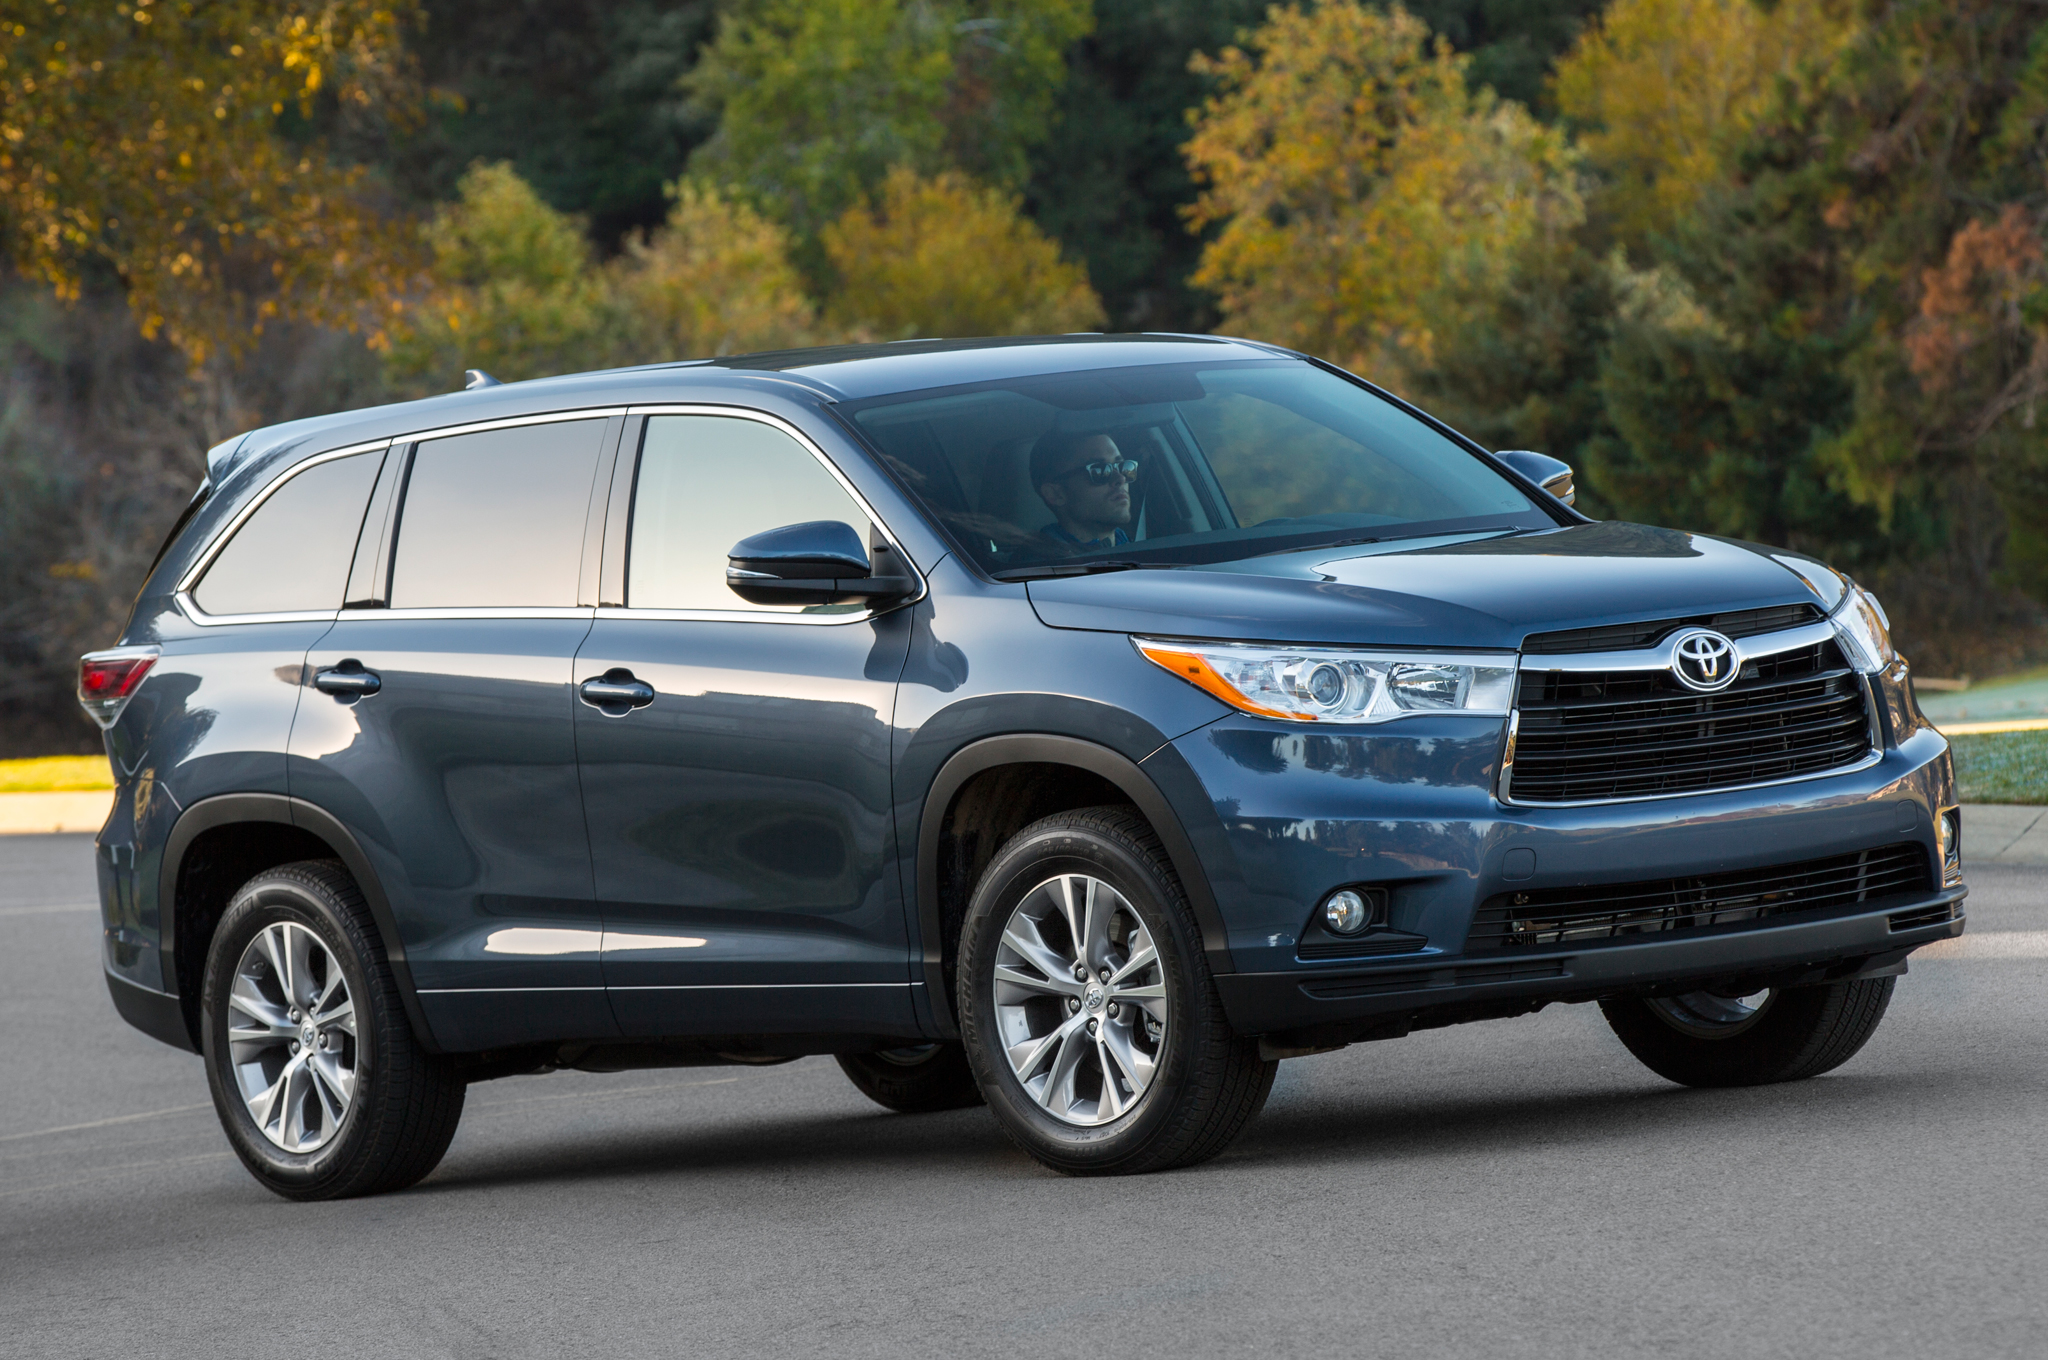 2014 Toyota Highlander Recalled for Problem with Seat Belt